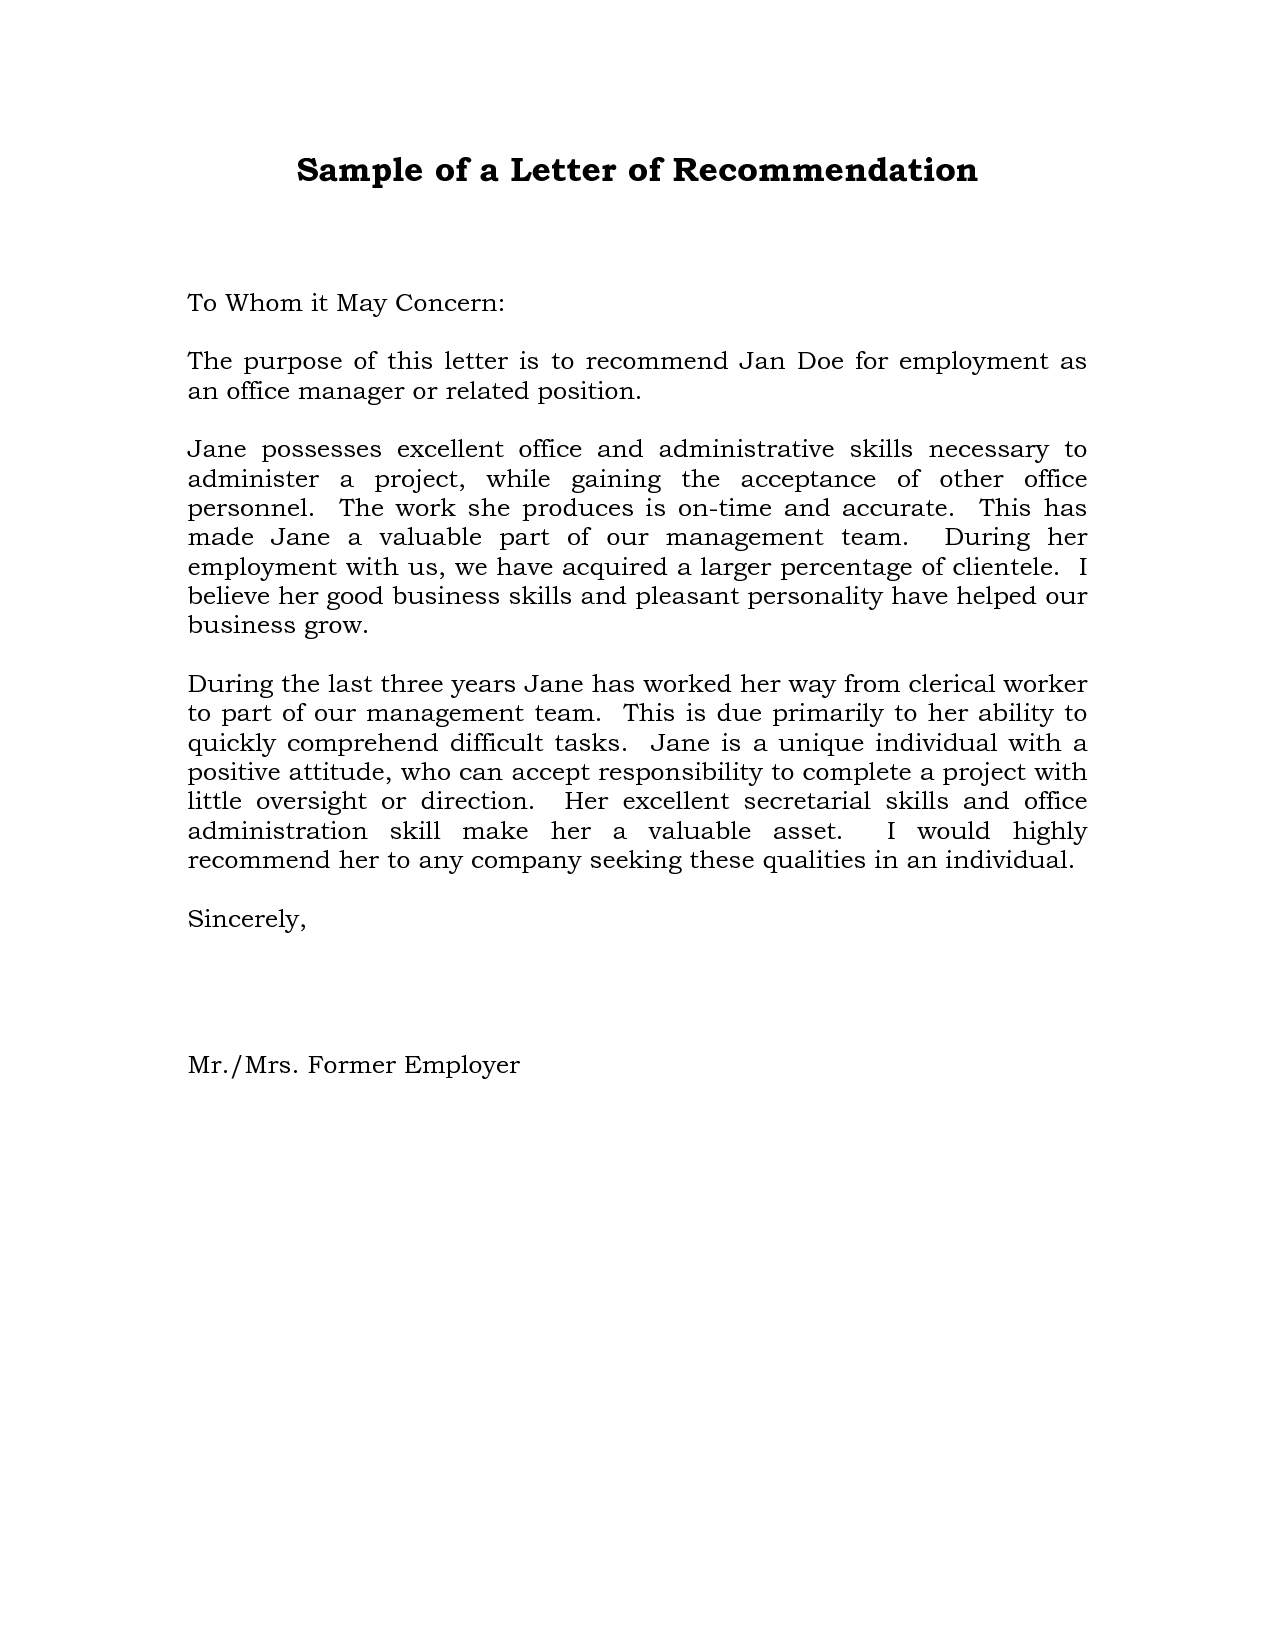 Recommendation Letter Sample Letter Examples – Sample Professional Letter of Recommendation for Job